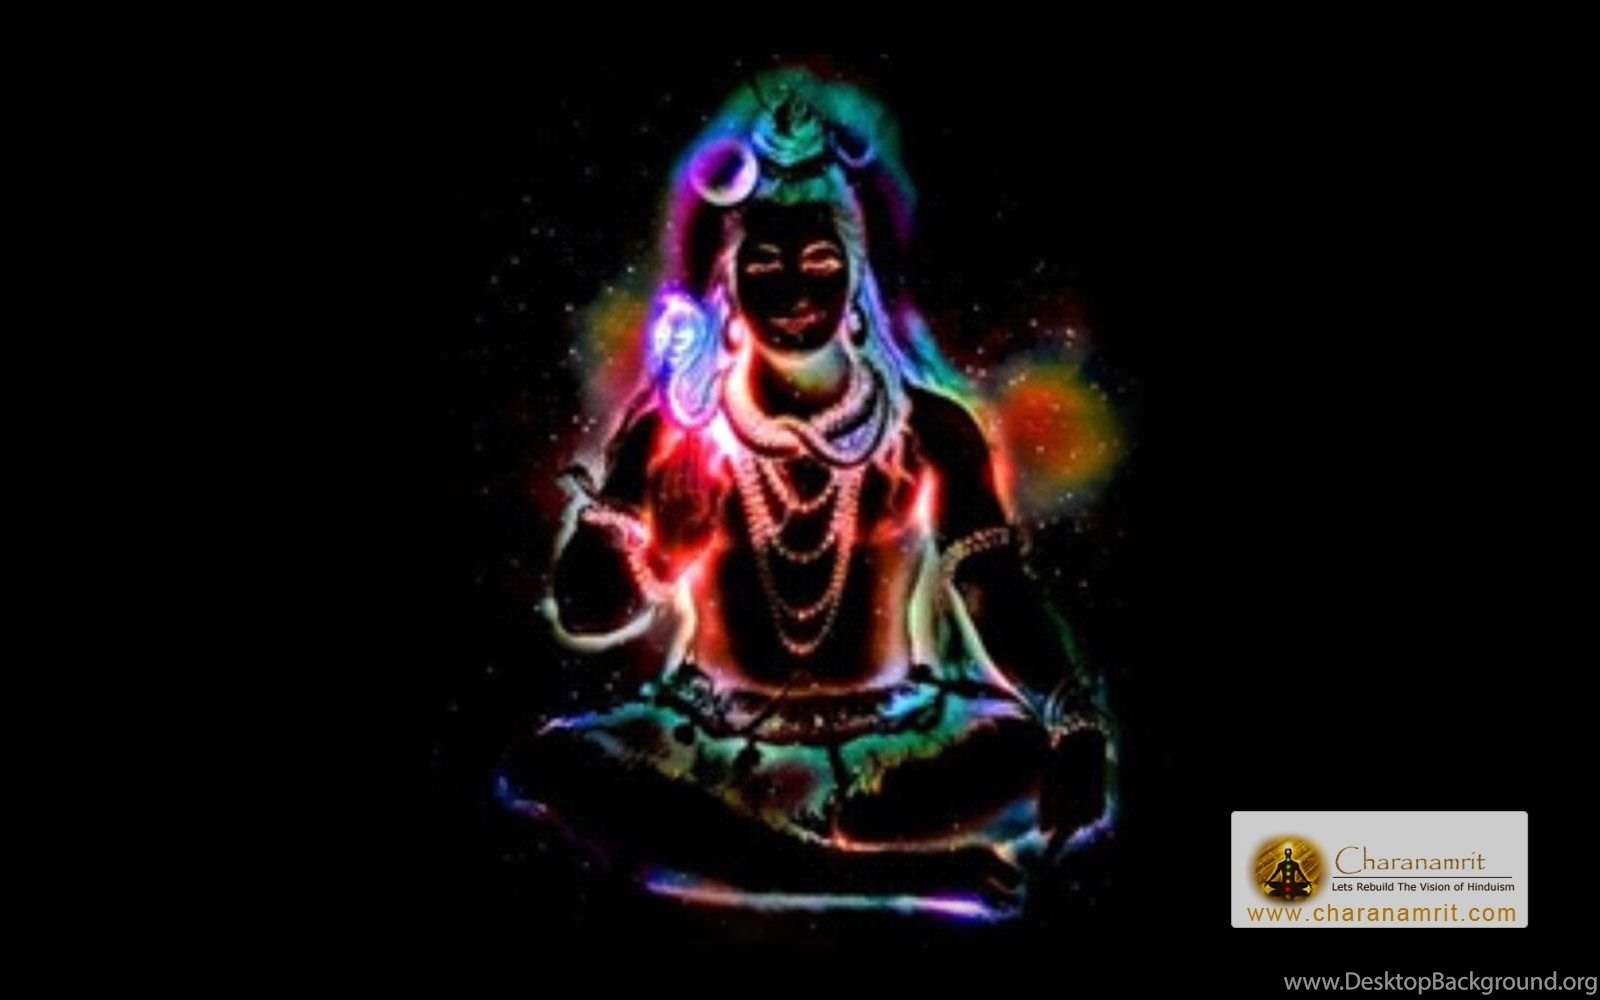 Lord Shiva Wallpapers Hd Free Download For Desktop: Lord Shiva Colorful Lighting Effects Hd Wallpapers For